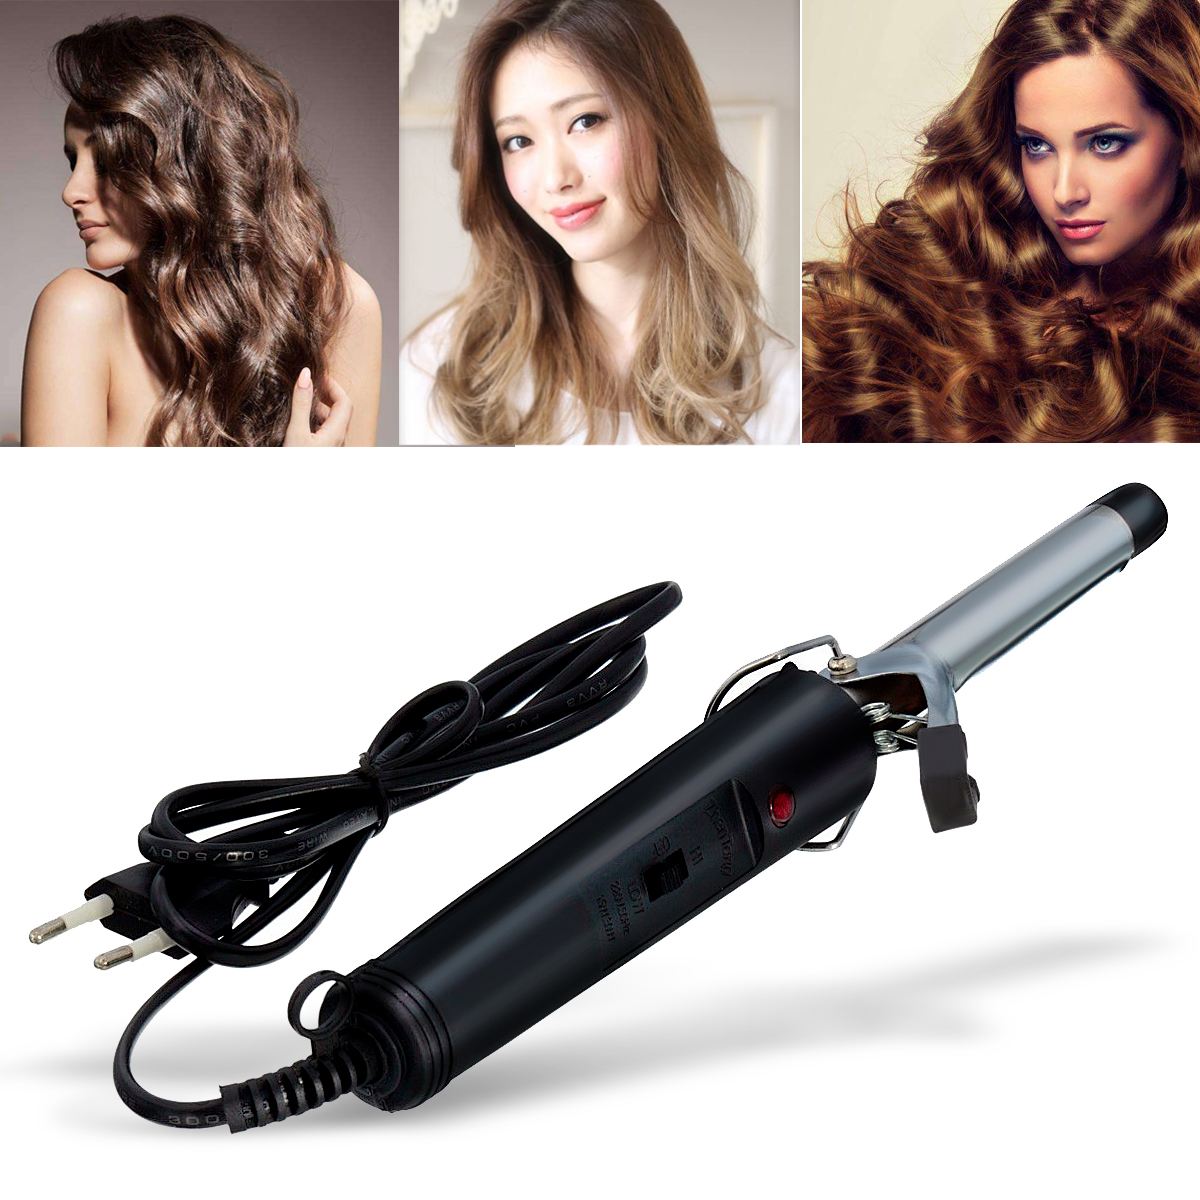 New High Quality Professional Useful Hair Salon Volume Curl Curling Iron Hair Curler Waver Maker Home Travel